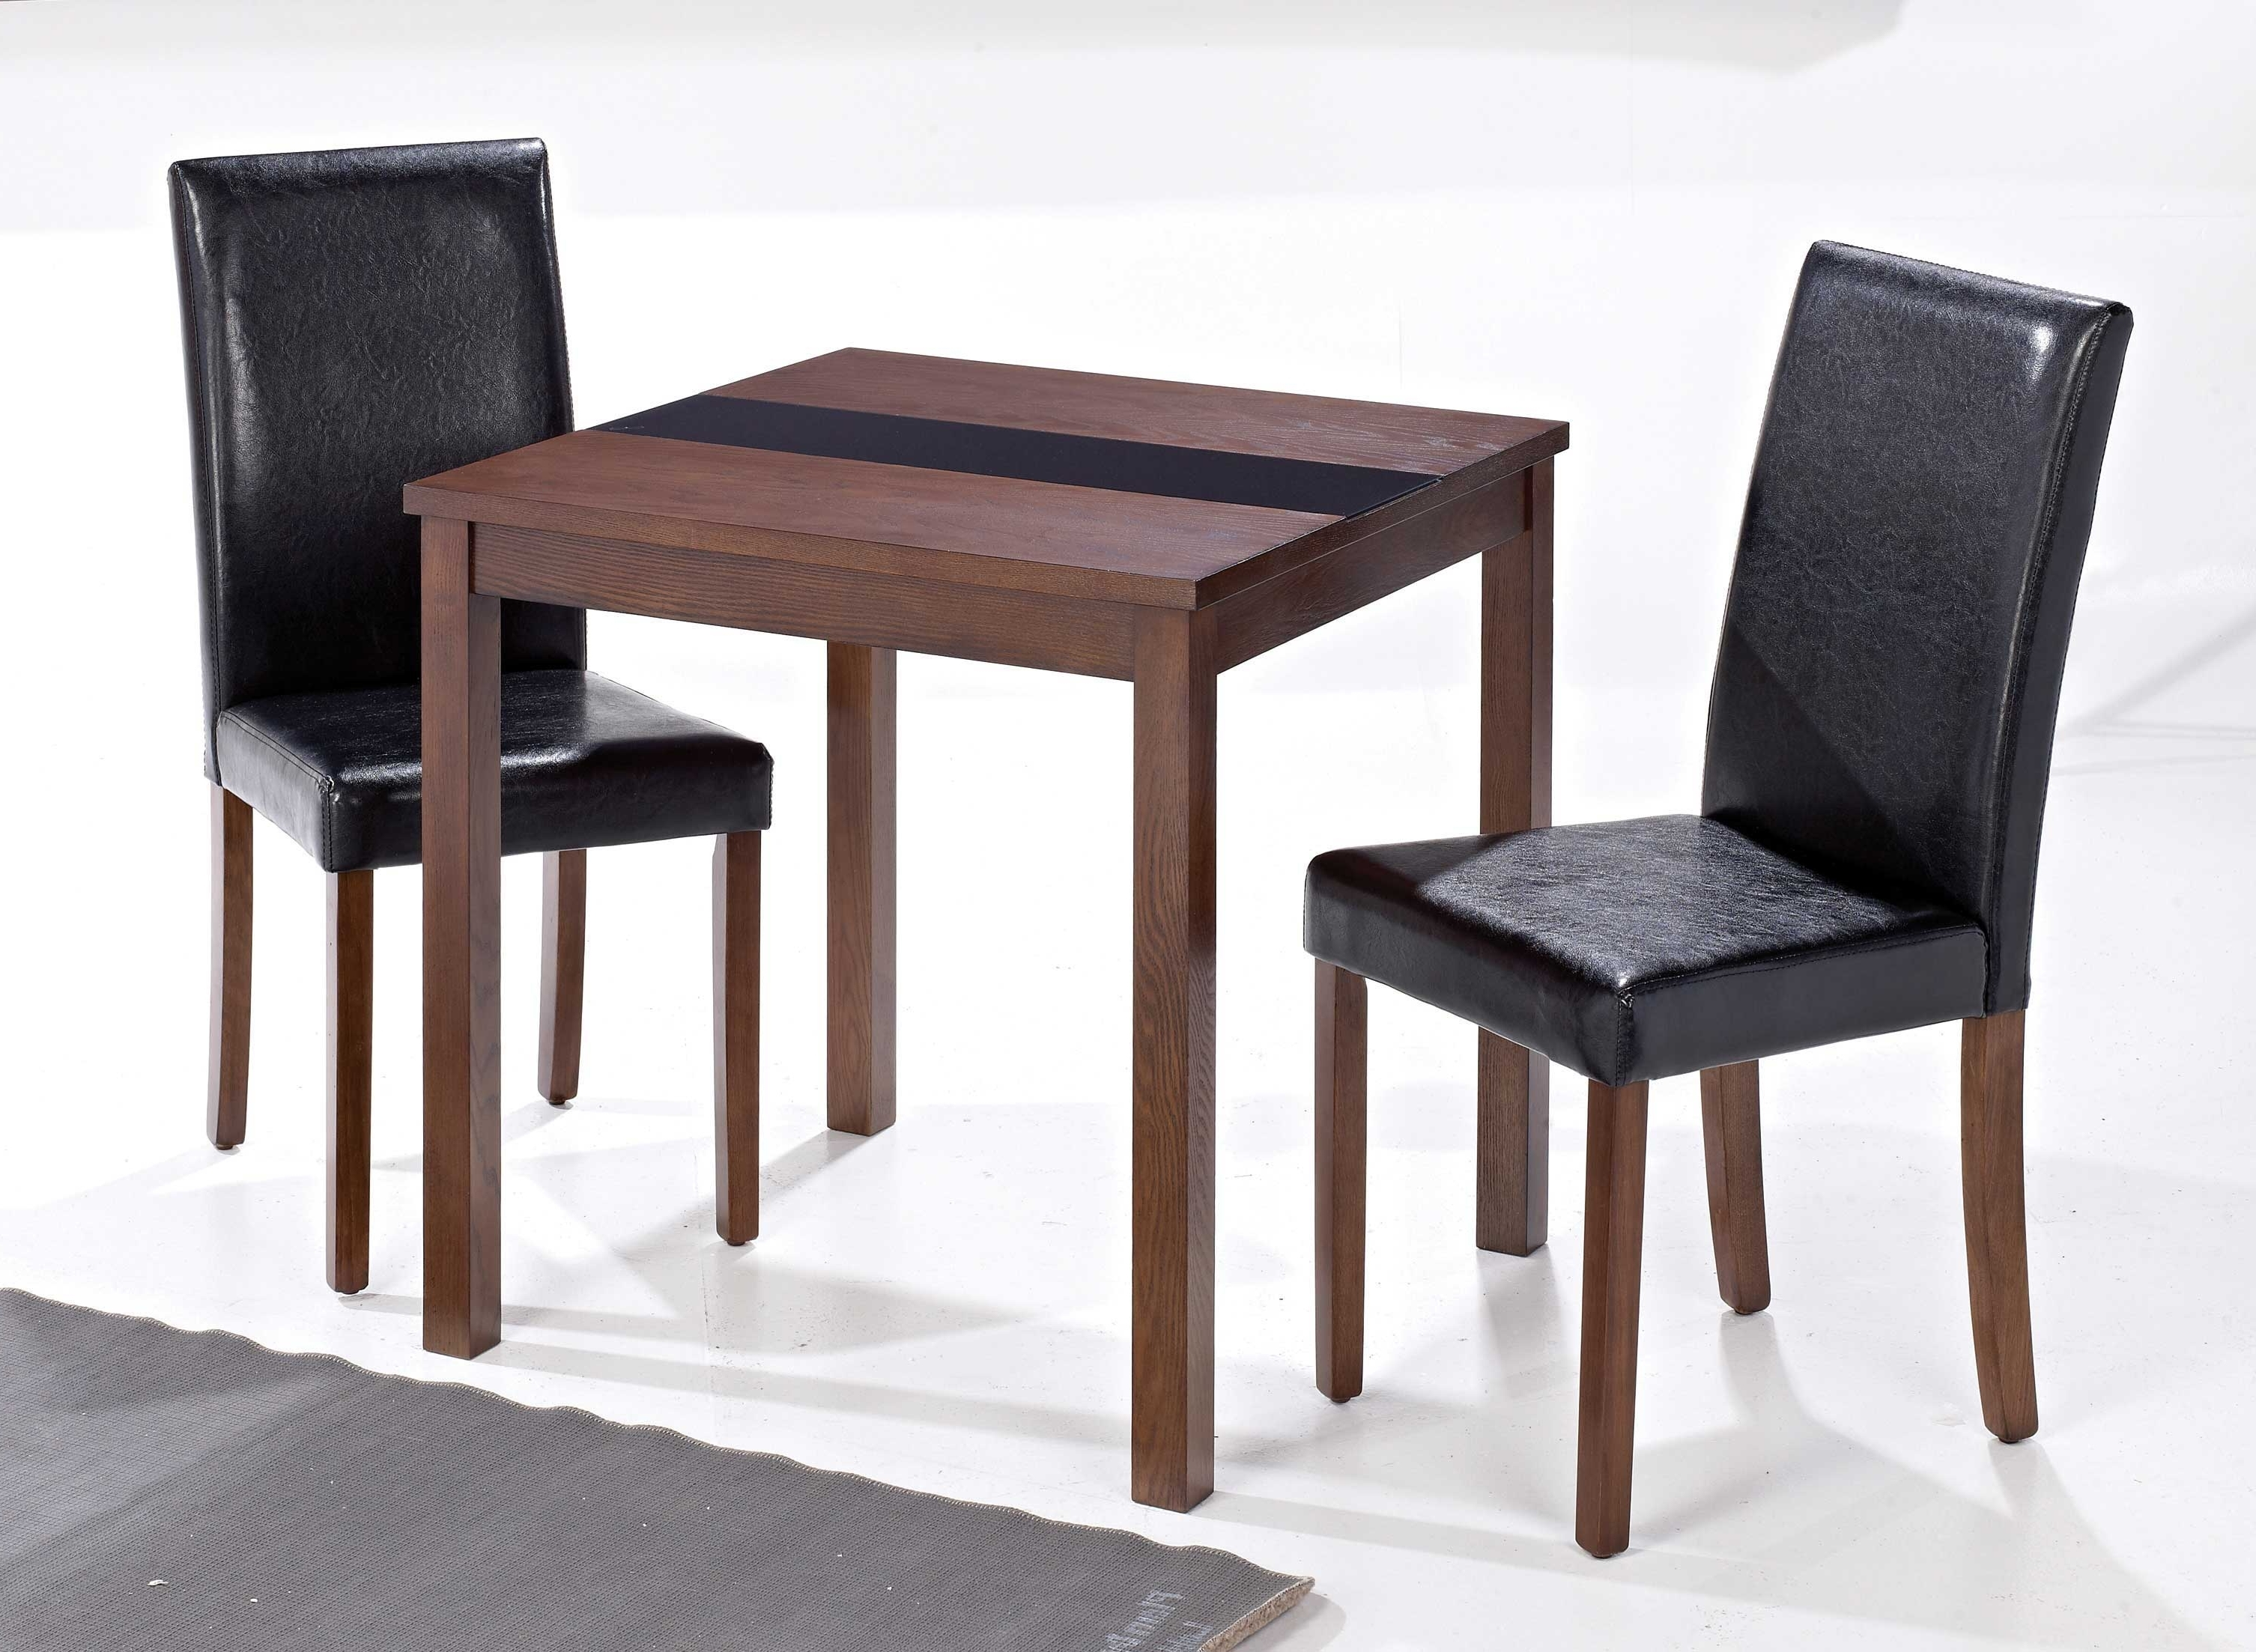 Dining Table Set 2 Seater • Table Setting Design Inside Newest Two Seater Dining Tables And Chairs (Gallery 2 of 25)